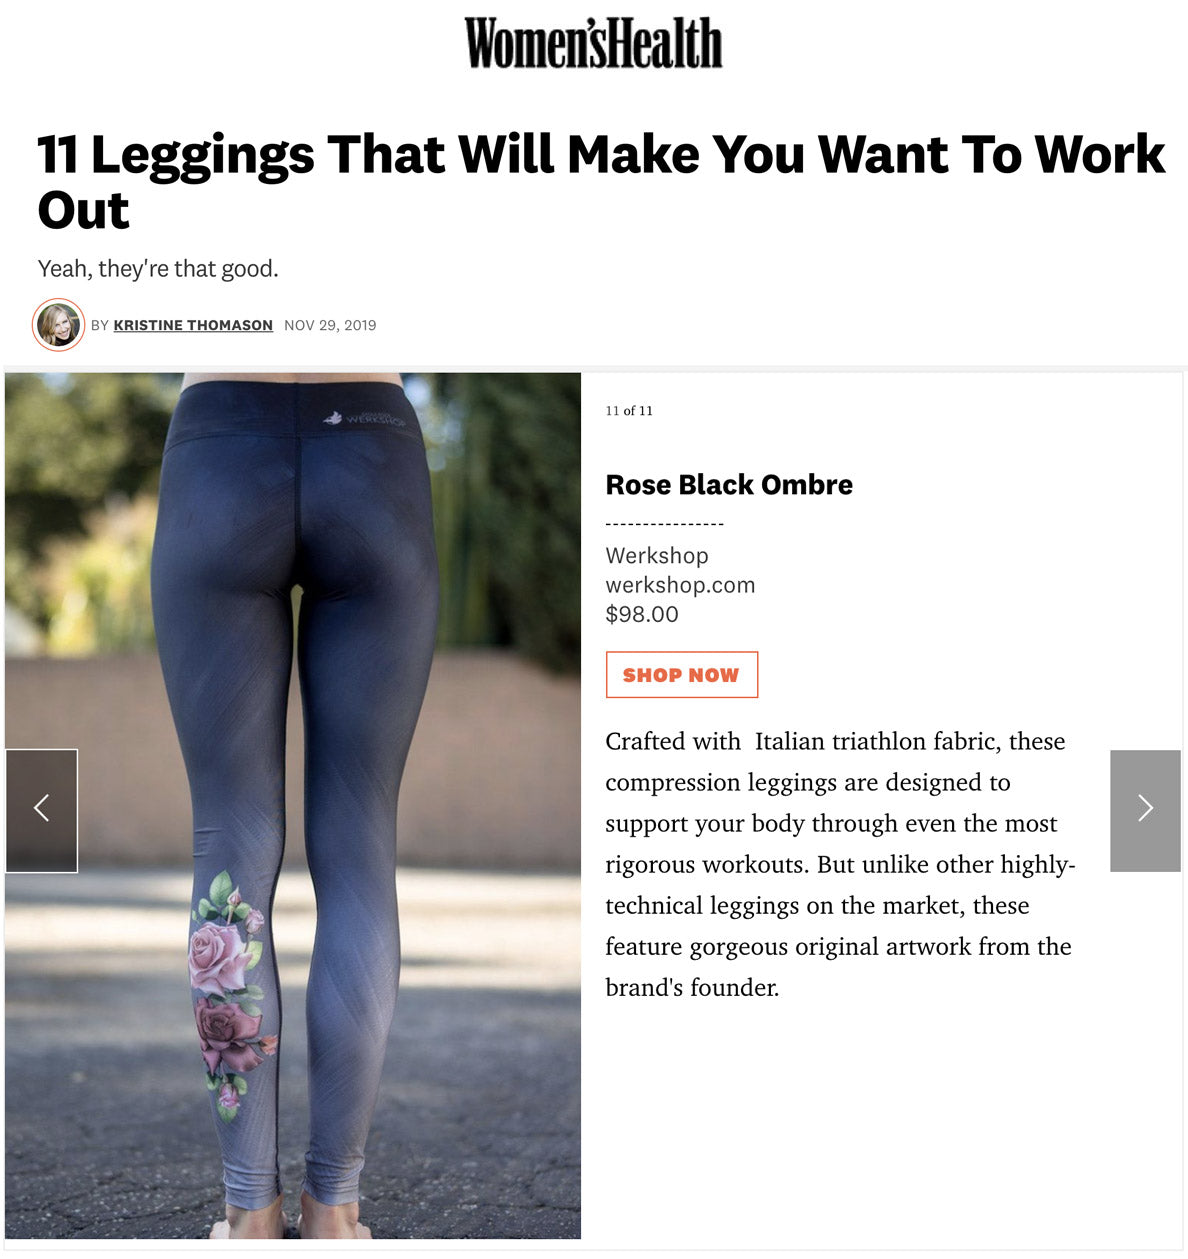 11 Leggings that will make you want to work out: featuring WERKSHOP Black Rose Ombre Leggings